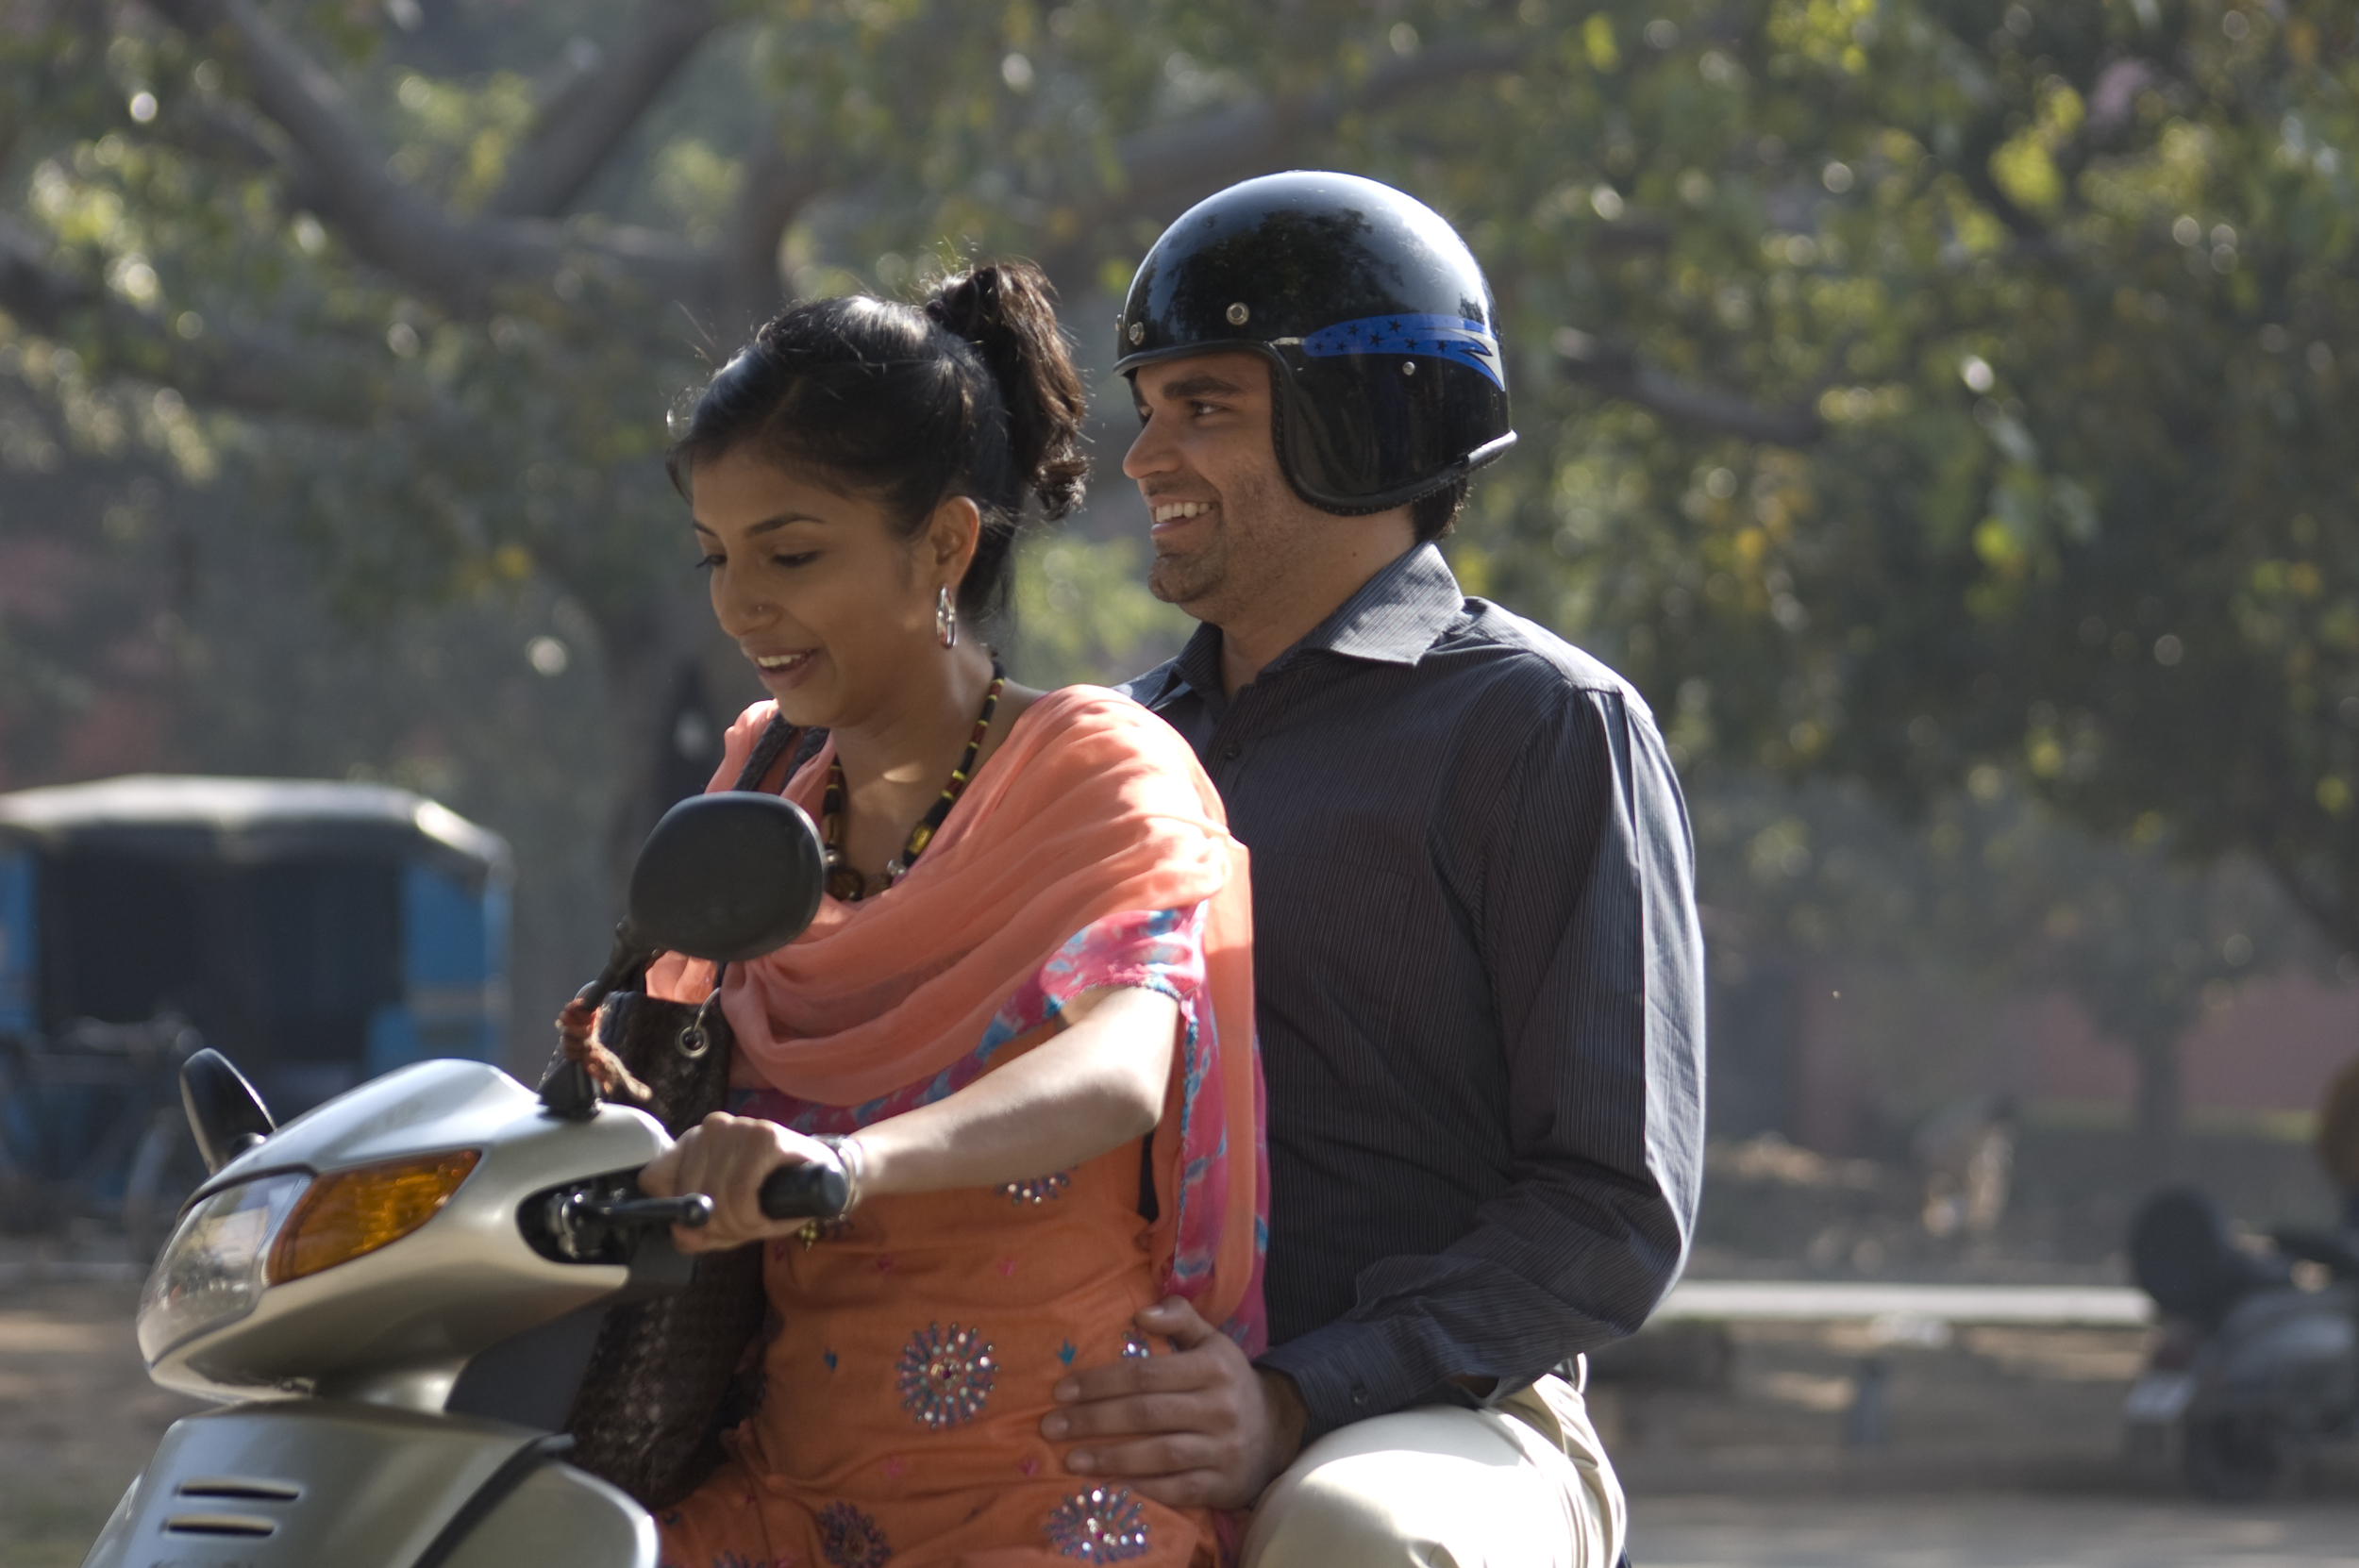 Ashok & Amita on bike.jpg